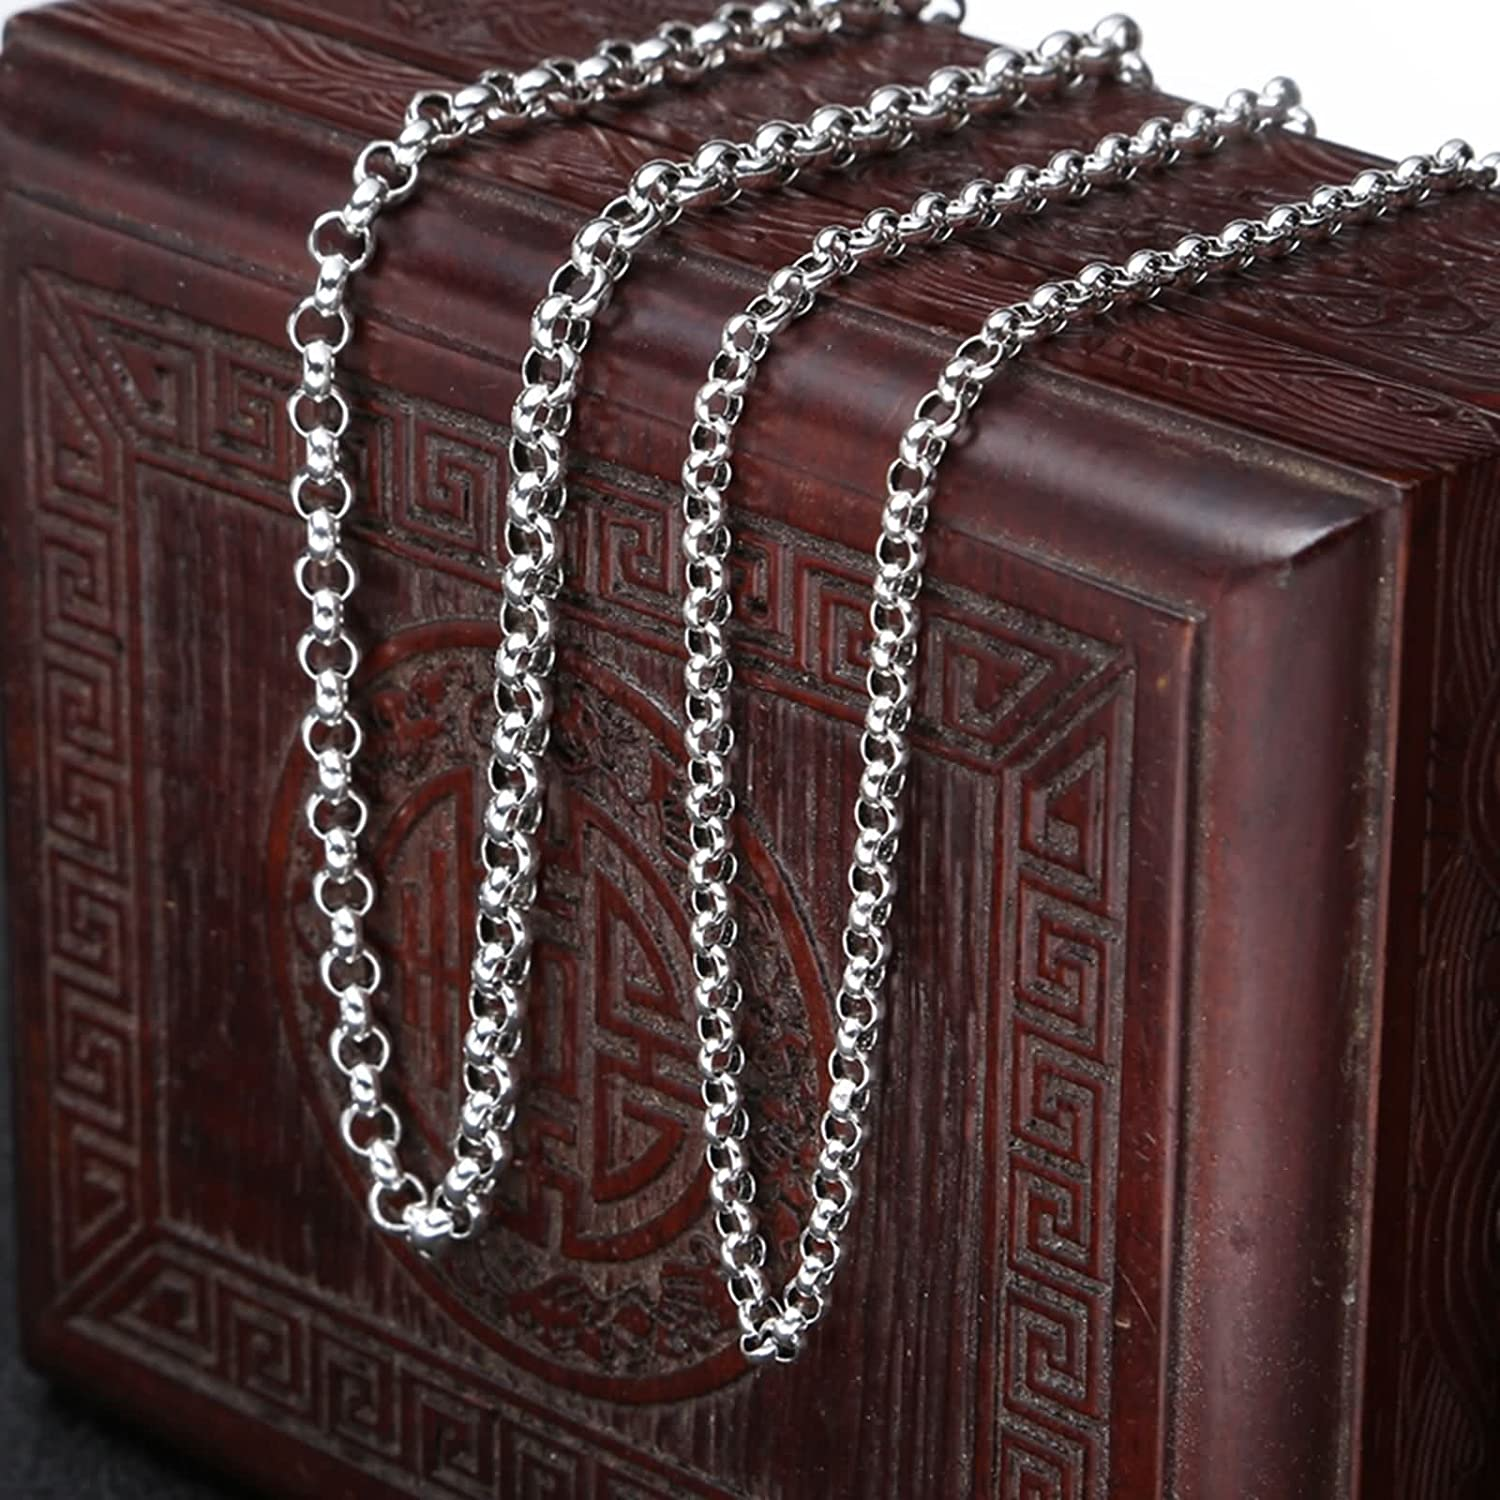 KnSam Belcher Chain for Men Women S925 Silver Classic Necklace W3-4mm x L18-32 Inches